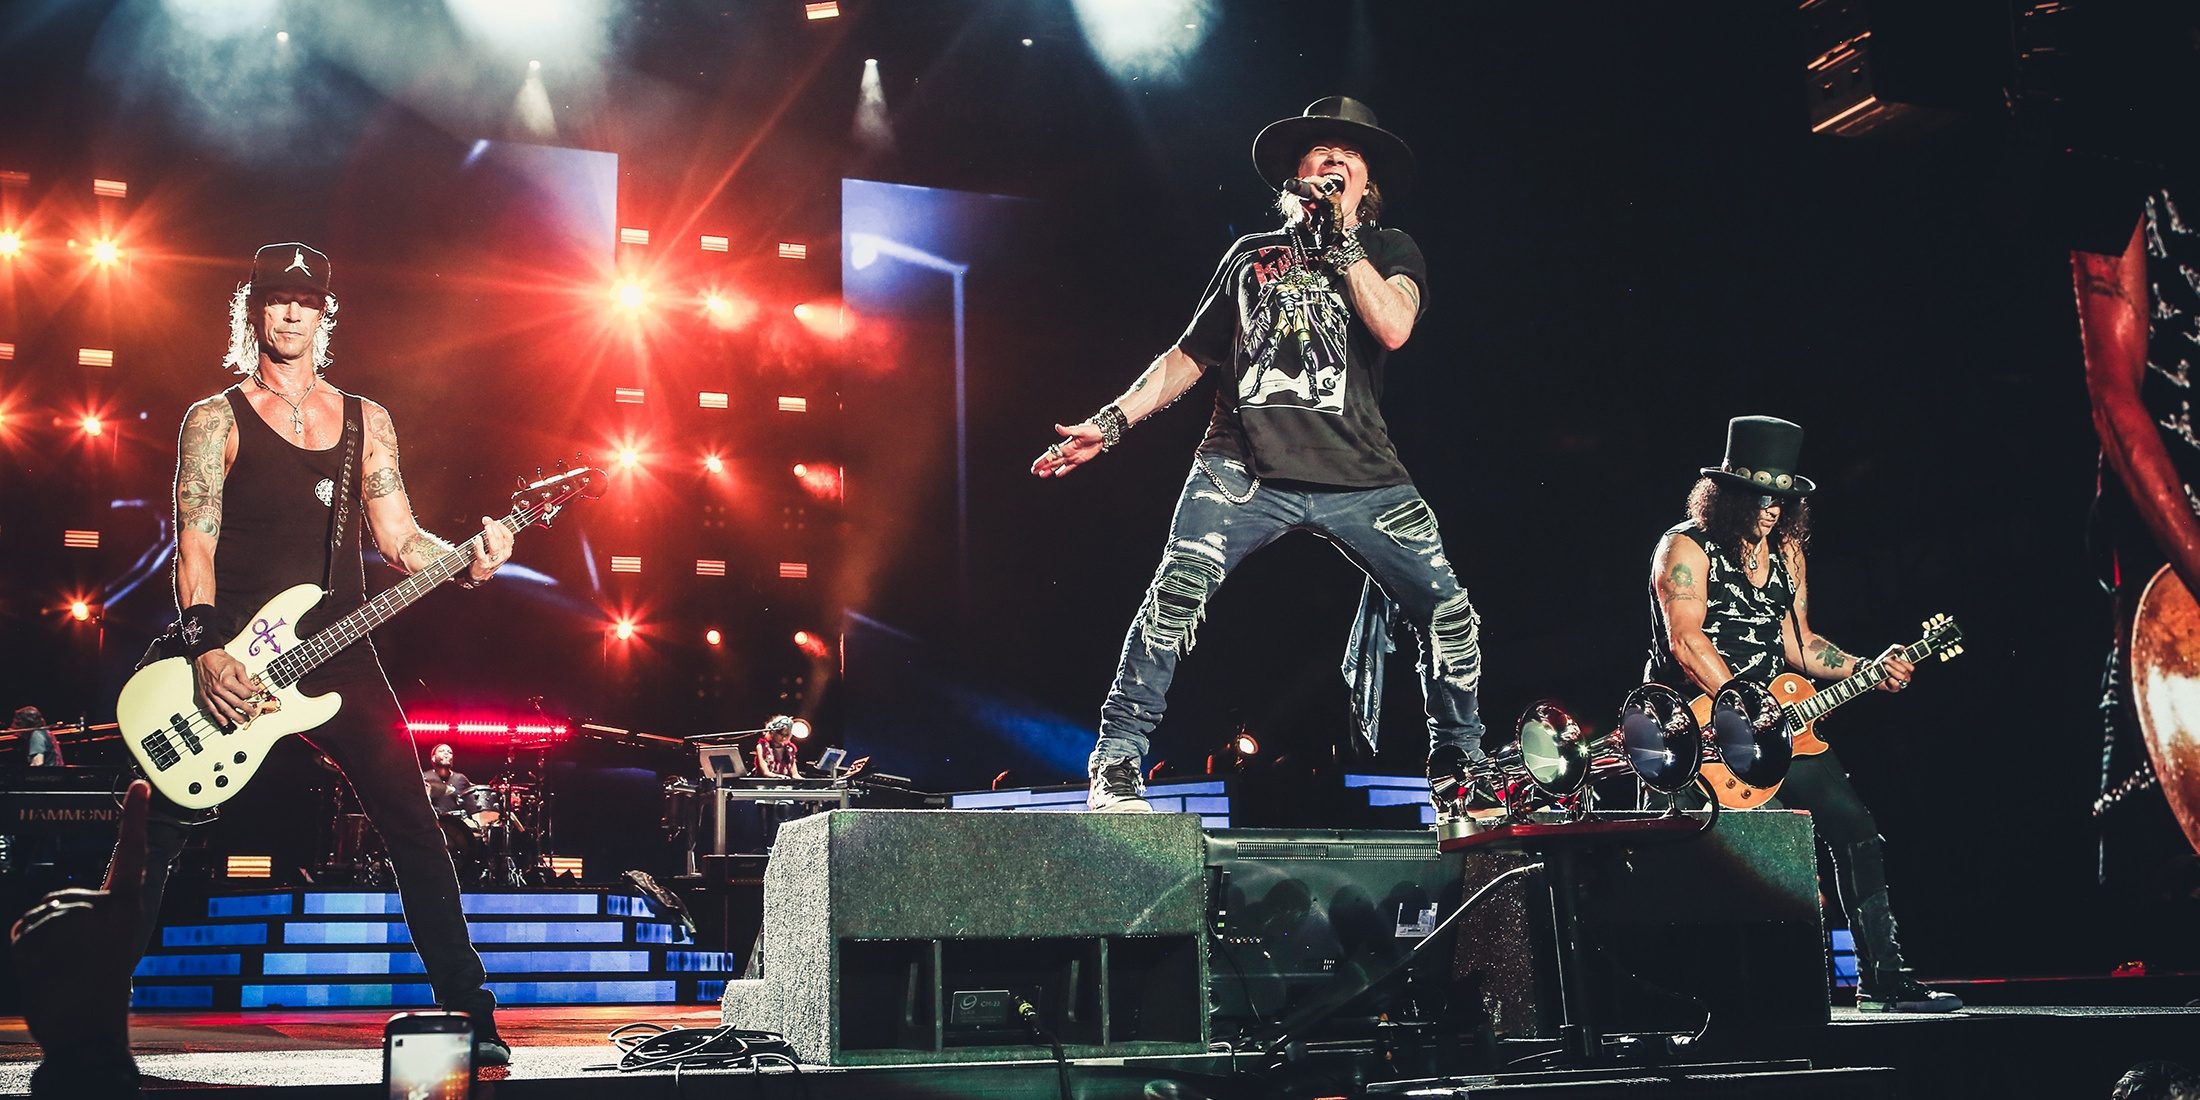 In case you're planning to catch Guns N' Roses more than once, they'll also be playing Bangkok